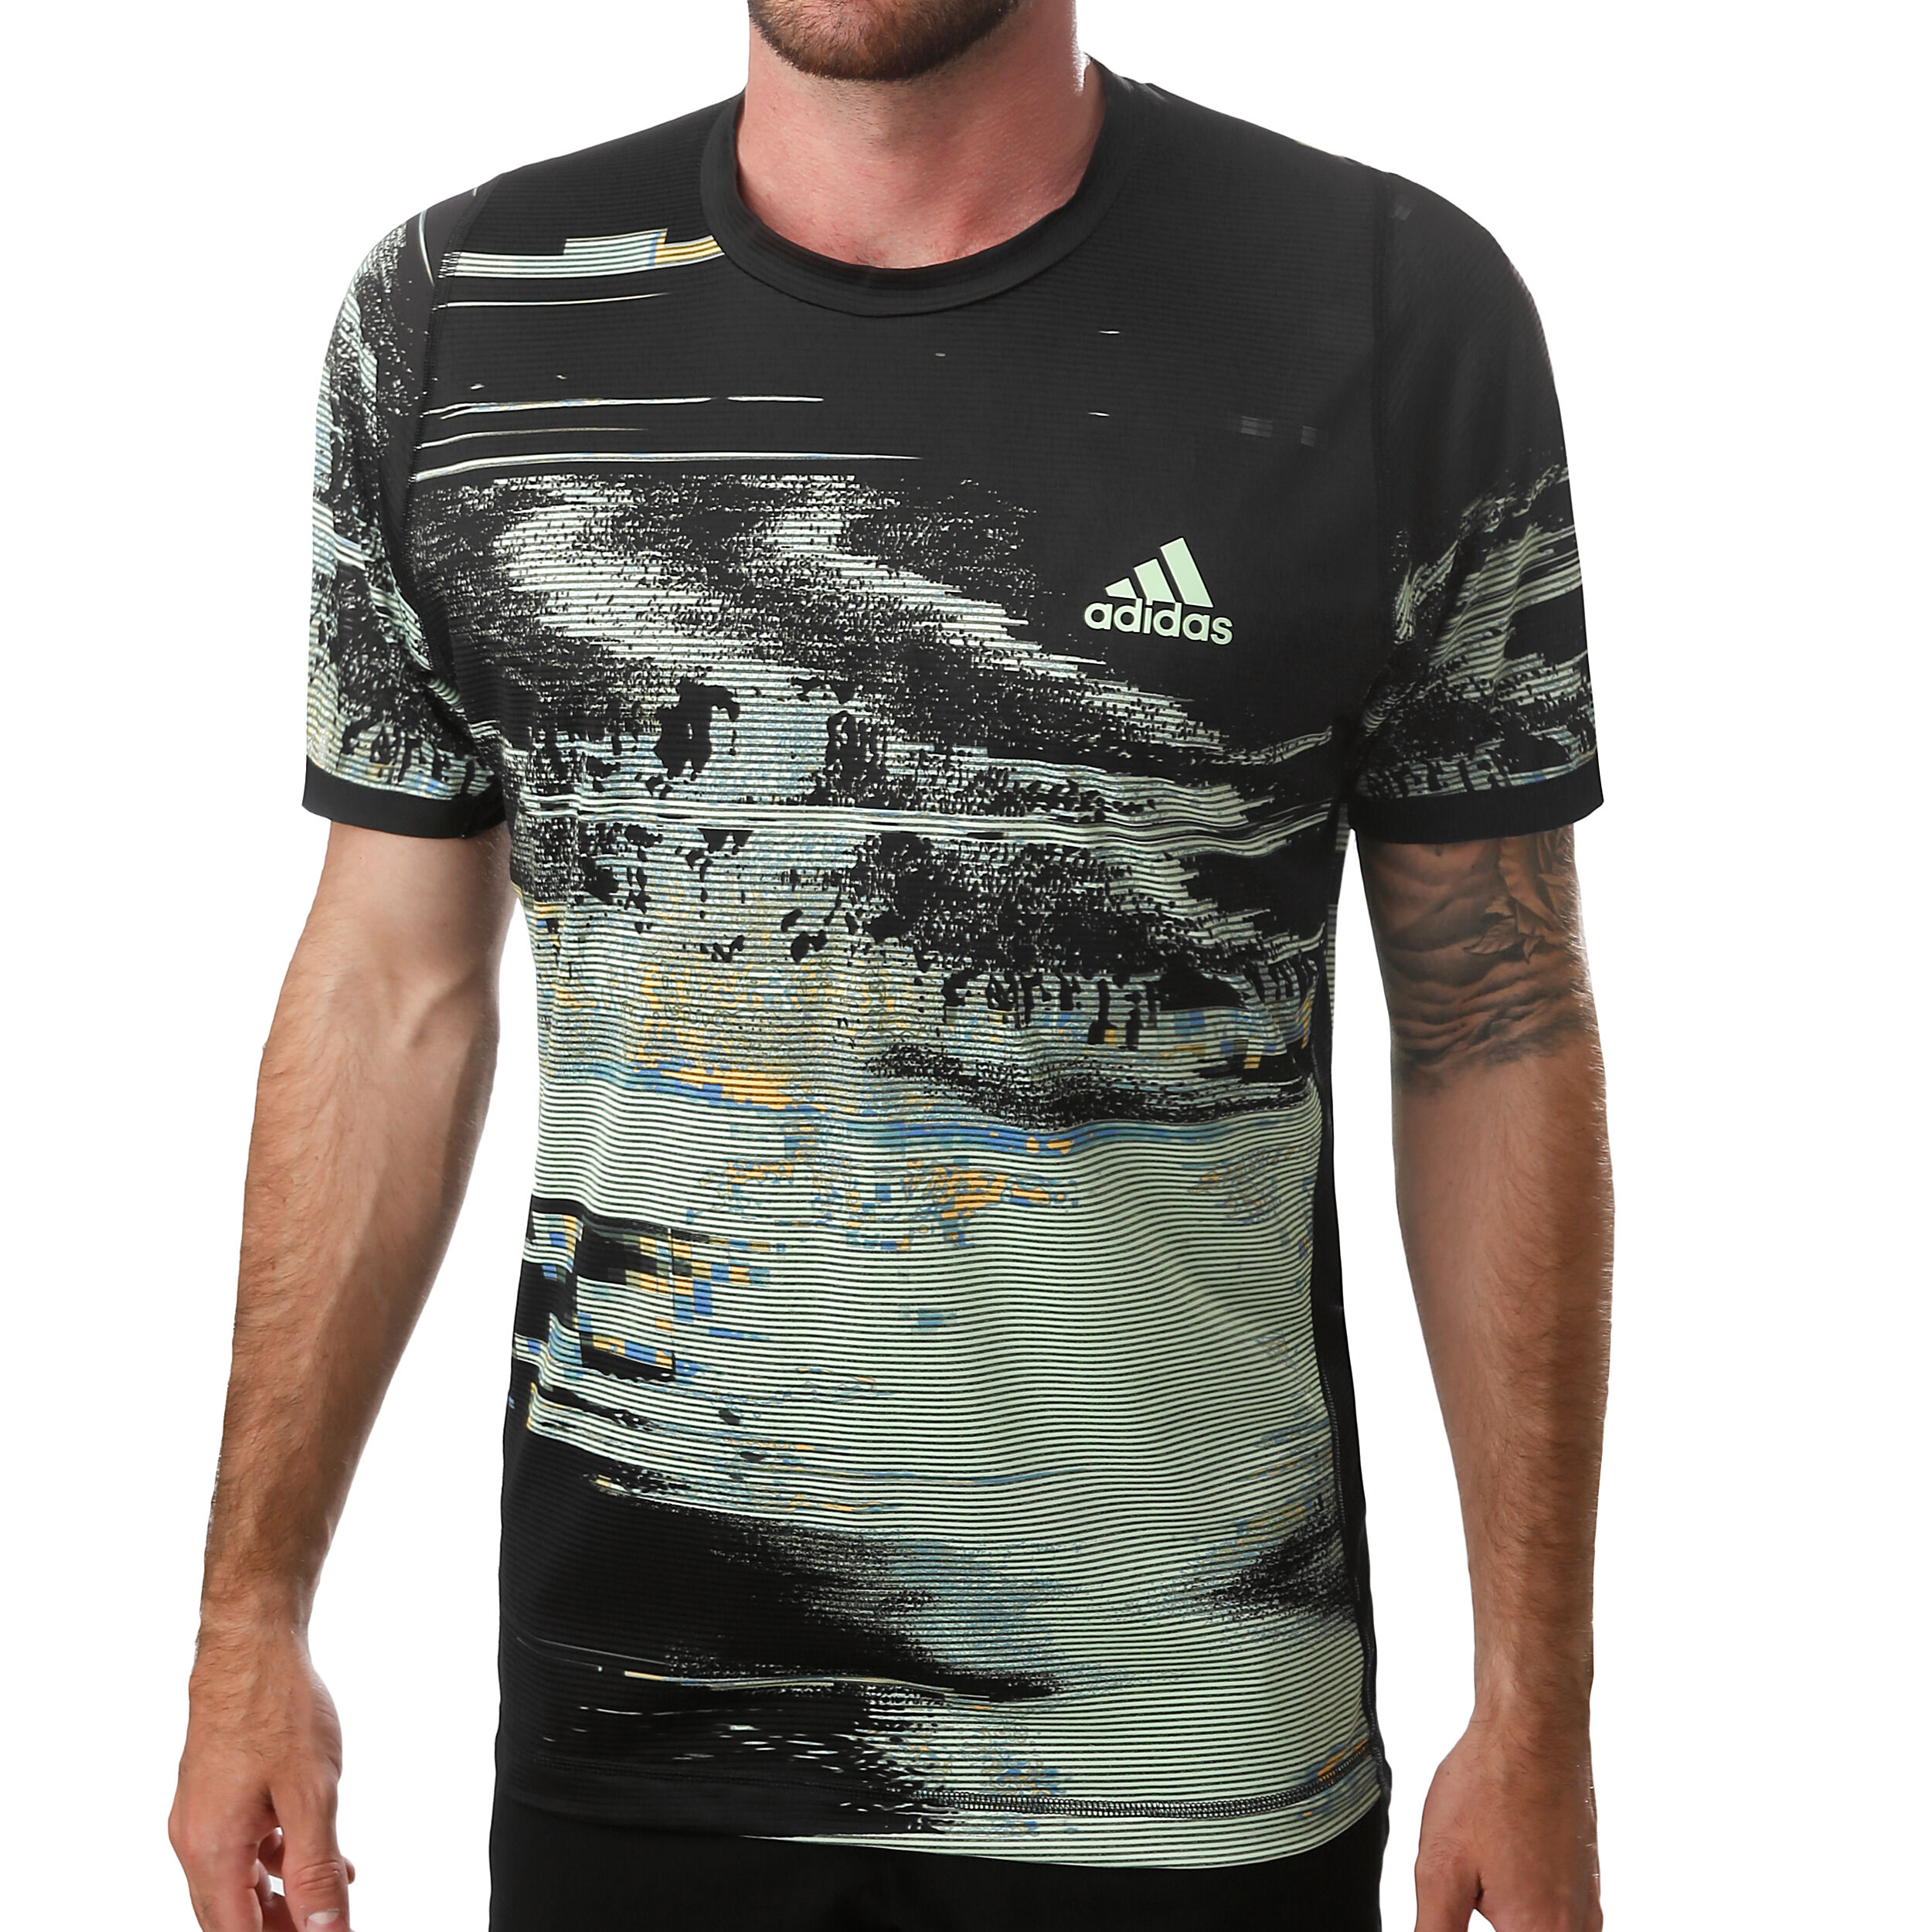 adidas New York Printed T shirt Heren Zwart, Lichtgroen